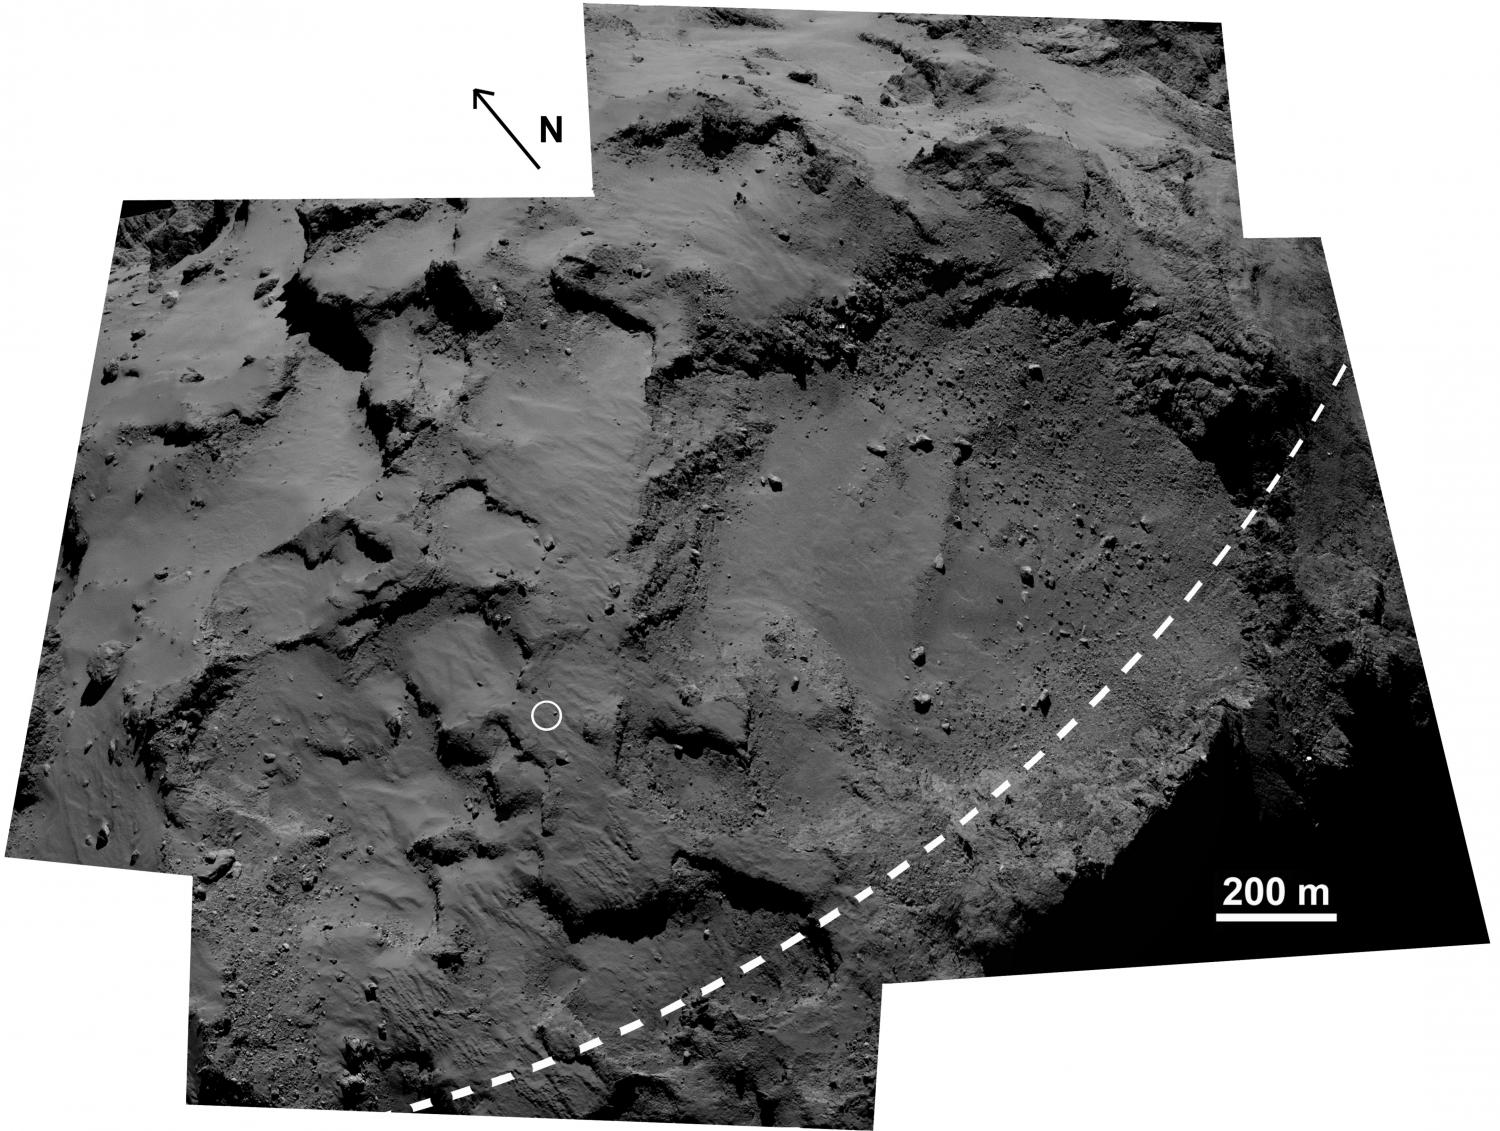 Rosetta and Philae—one year since landing on a comet